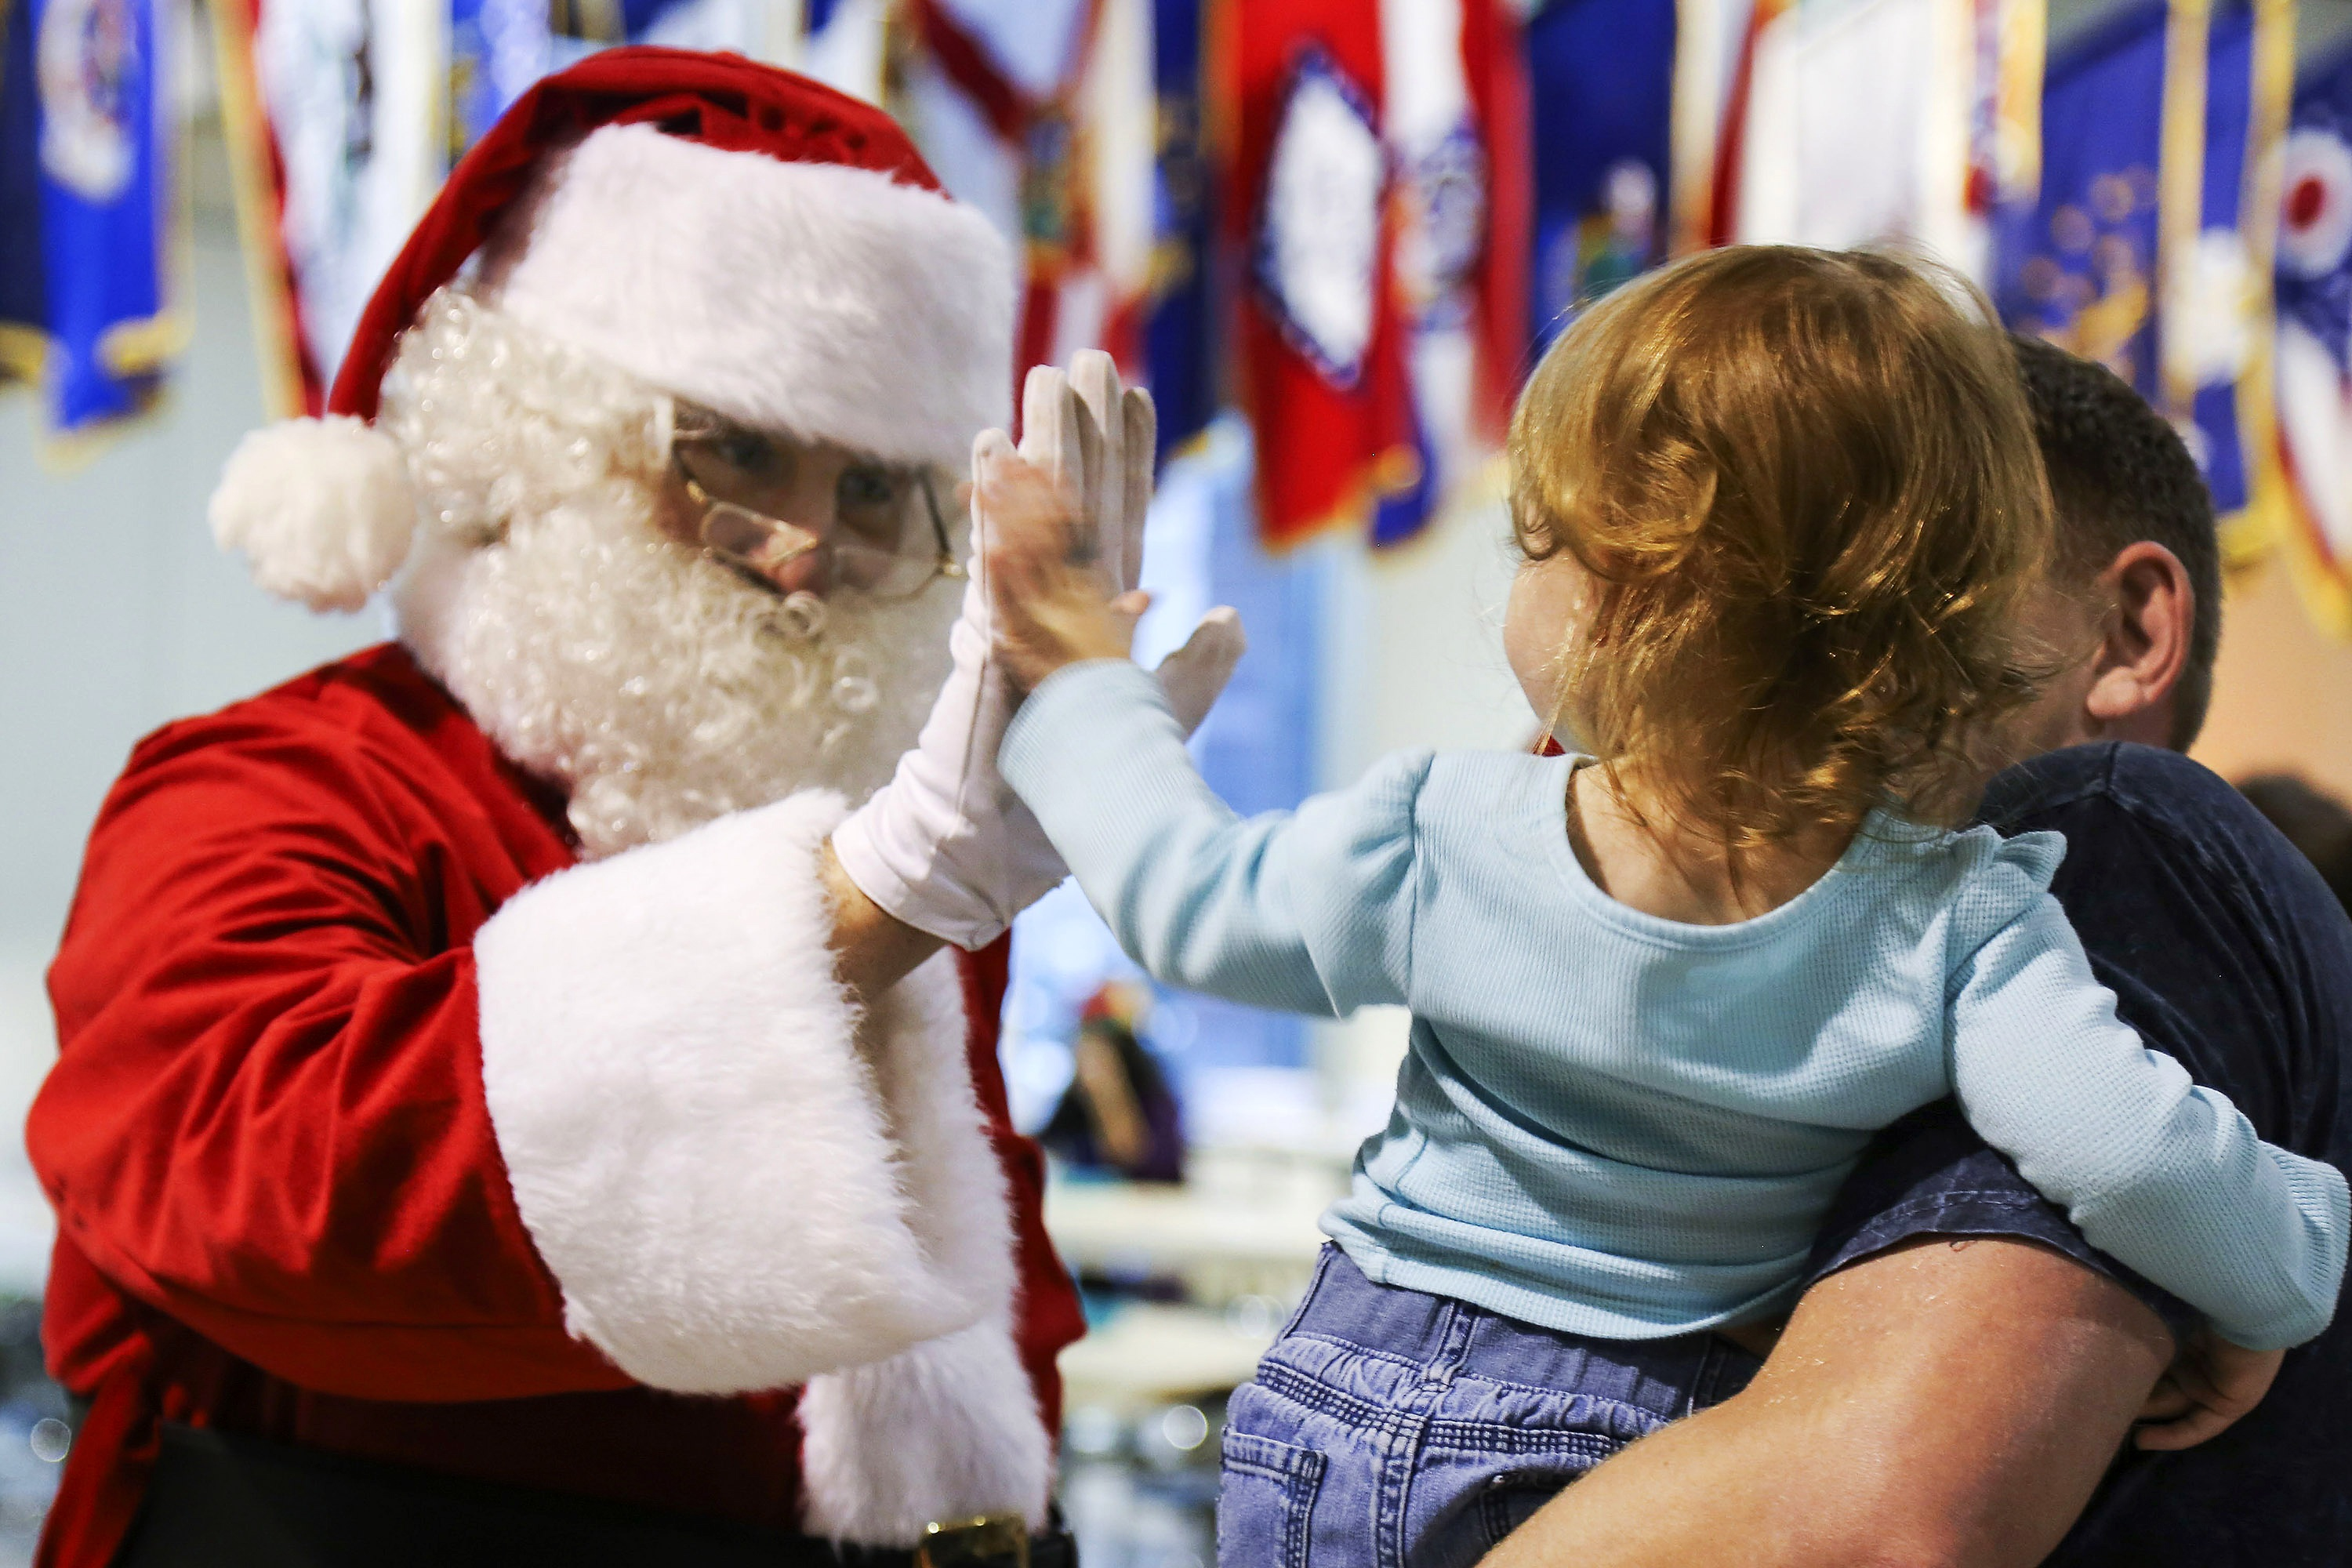 Santa's High Five, Christmas, Claus, People, Santa, HQ Photo